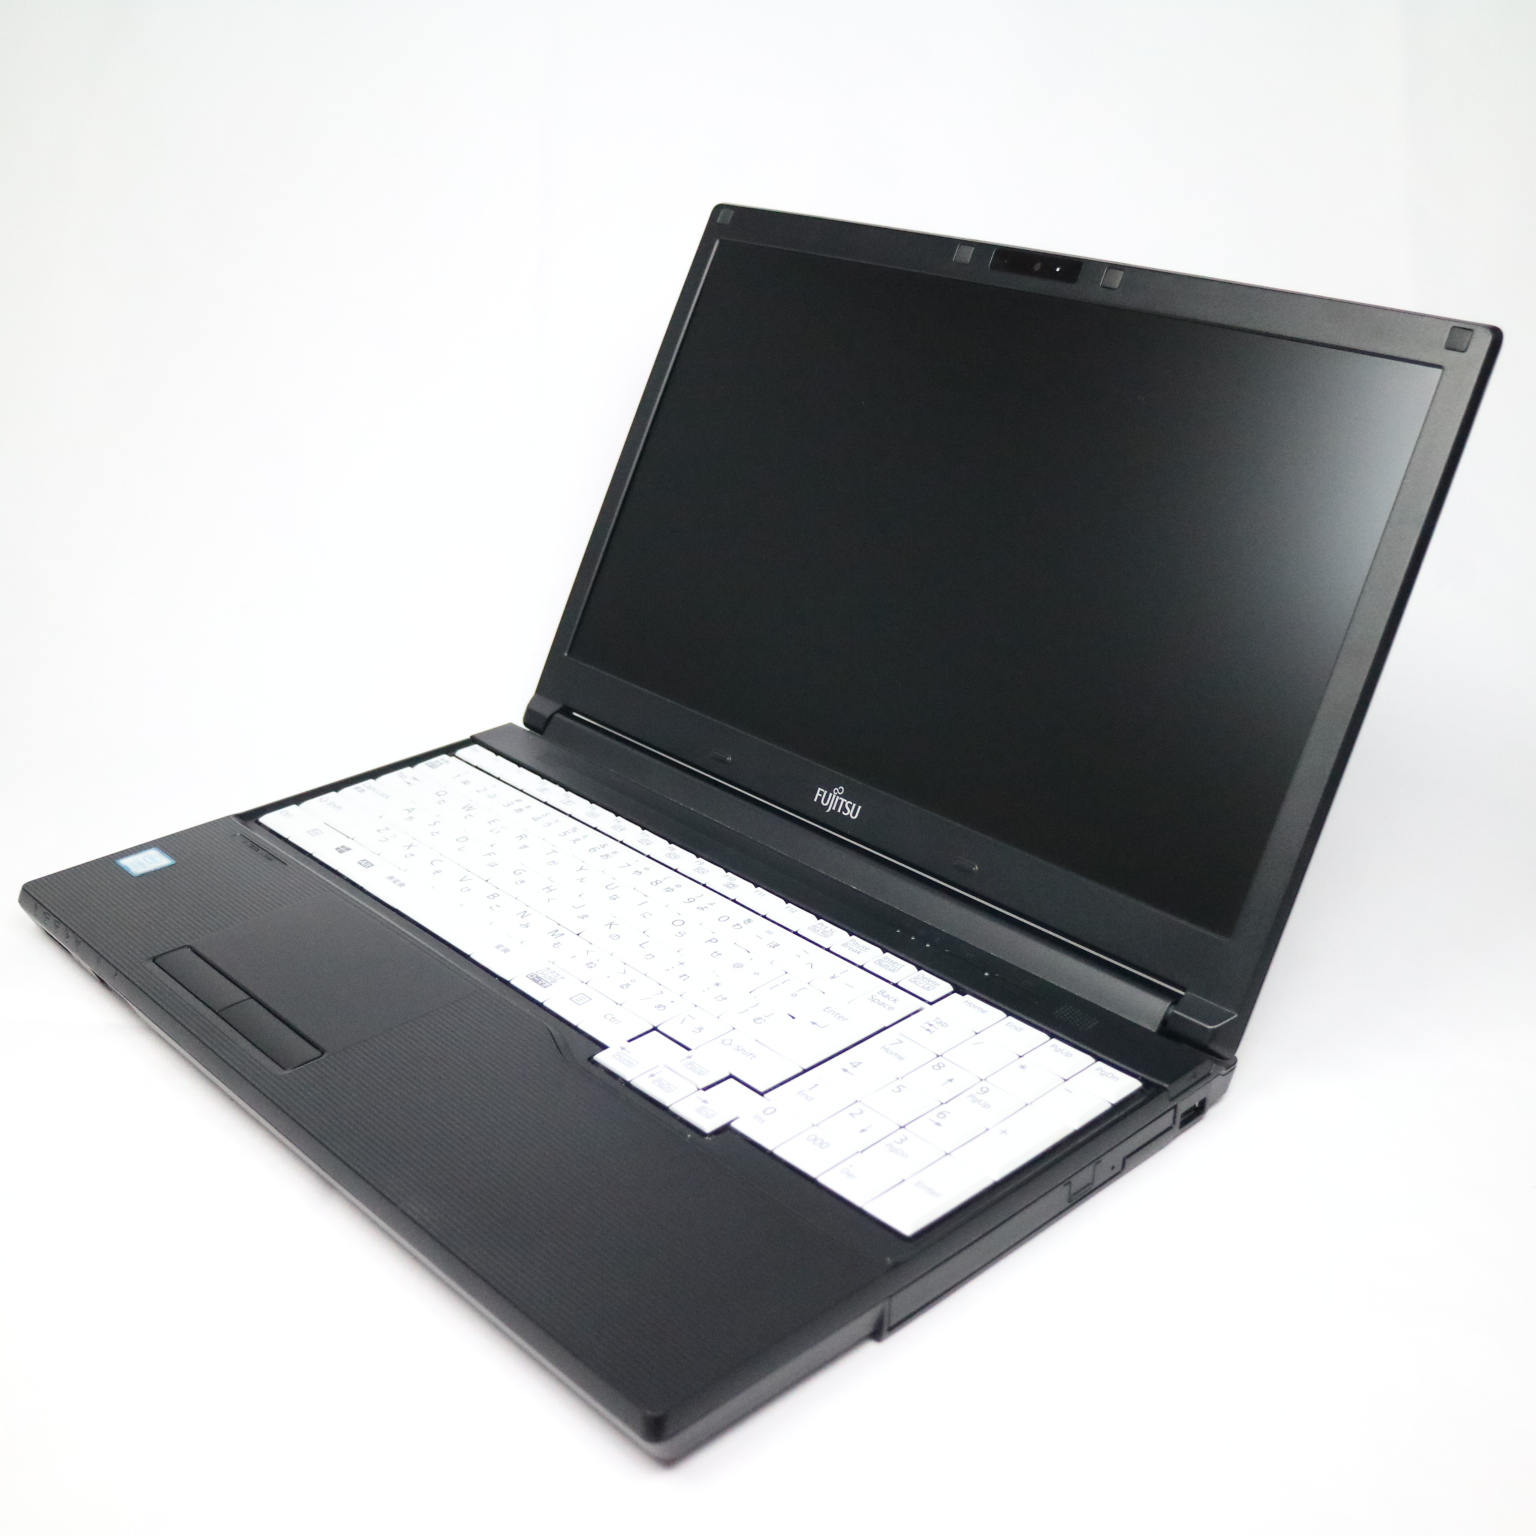 【メモリ増設】【Windows10】LIFEBOOK A747/S / 15.6インチ/ Core i5-7300U/ 2.6GHz/ 8GB/ SSD 256GB